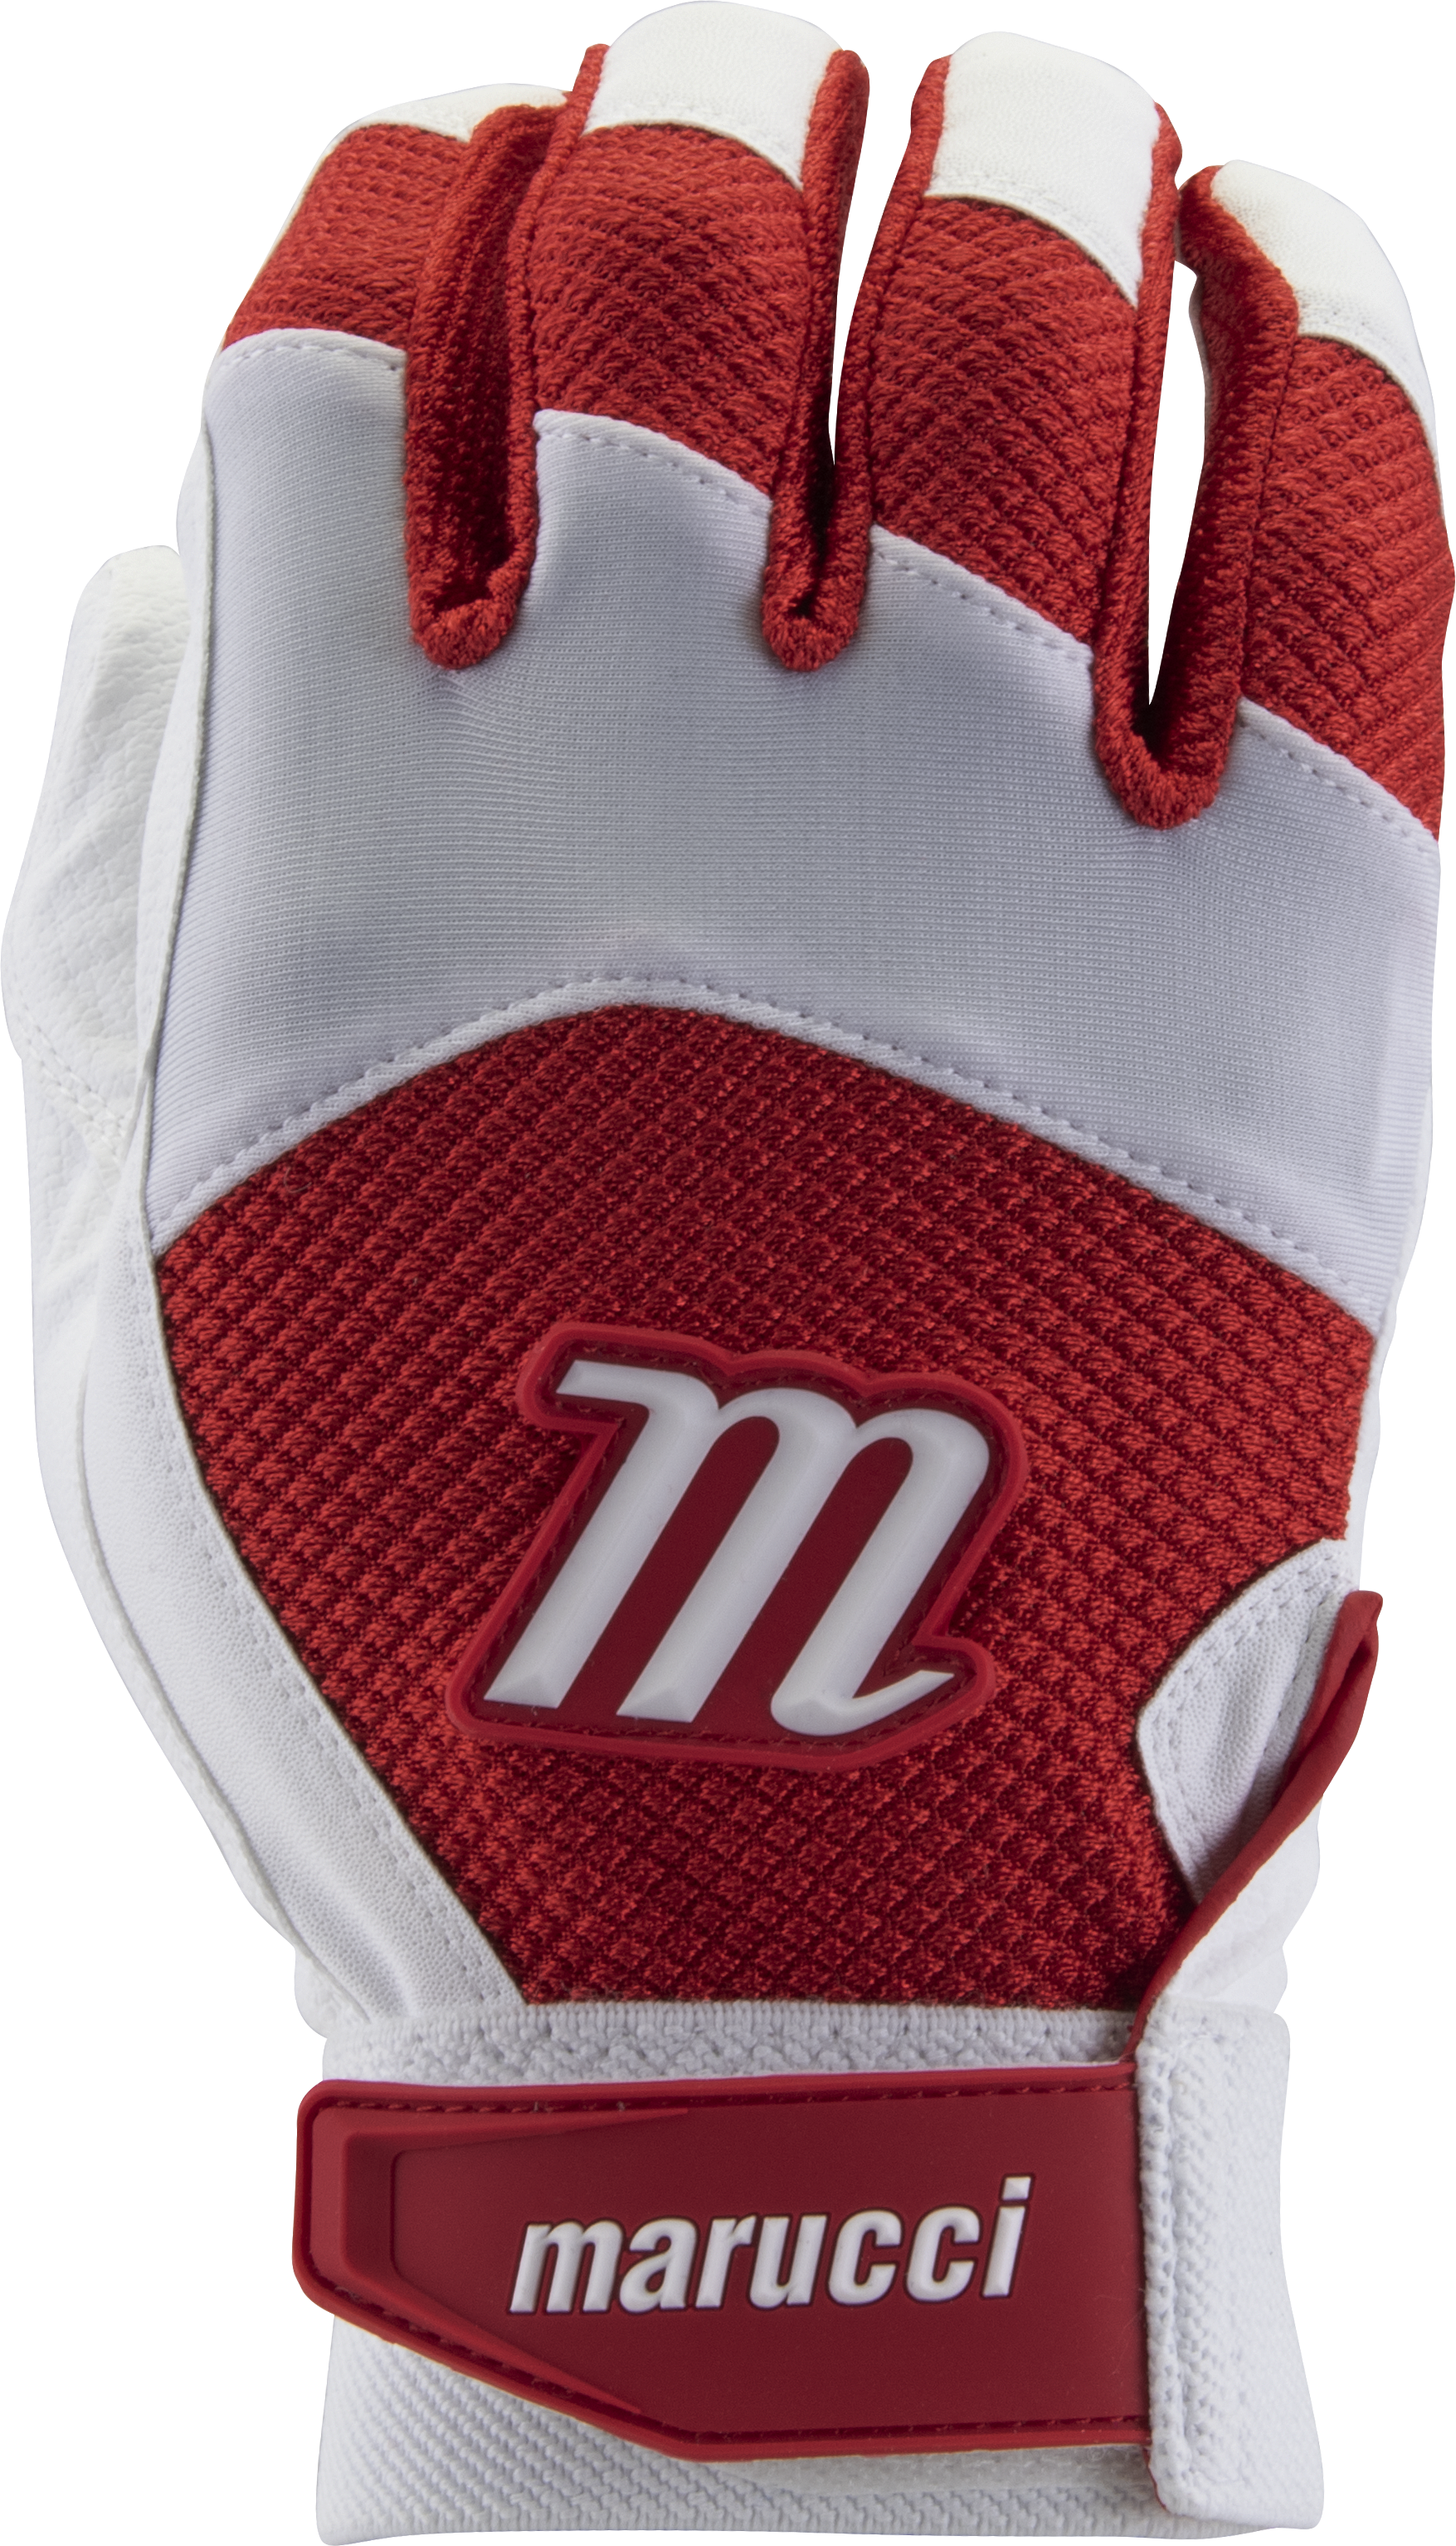 marucci-code-adult-batting-gloves-1-pair-white-red-adult-large MBGCD-WR-AL Marucci 849817096062 2019 Model MBGCD Consistency And Craftsmanship Commitment To Quality And Understanding